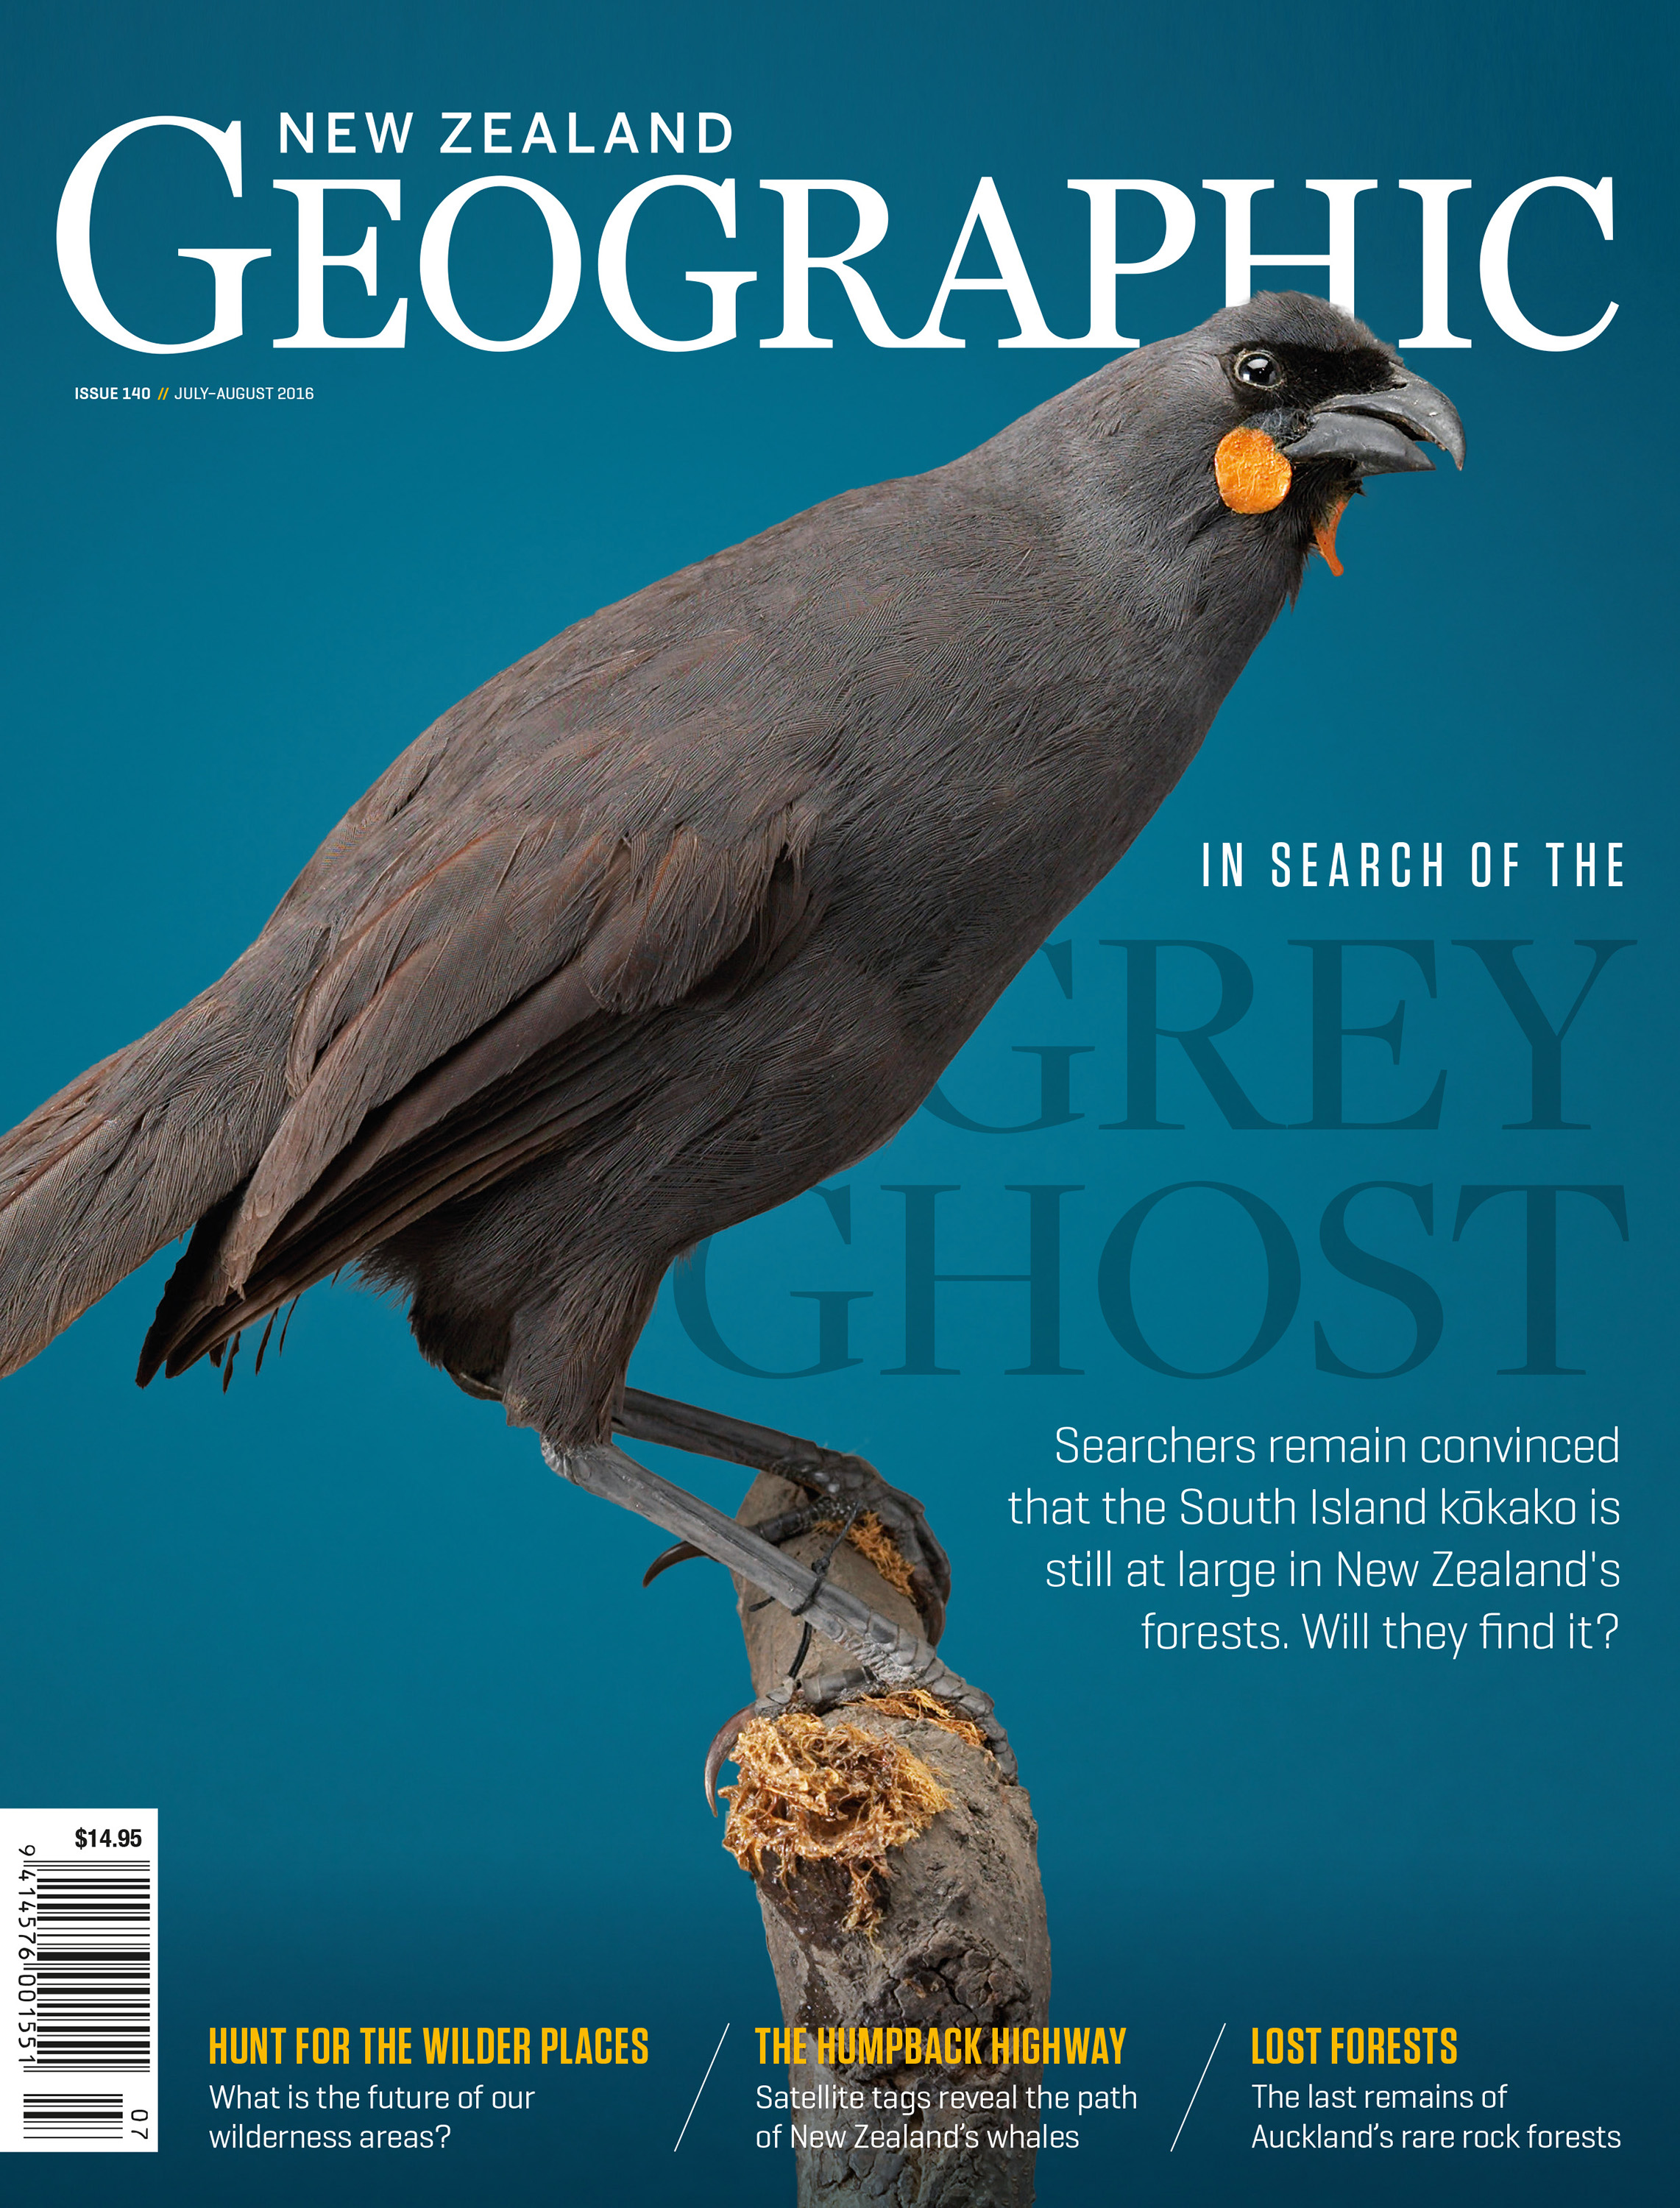 In Search of the Grey Ghost | New Zealand Geographic